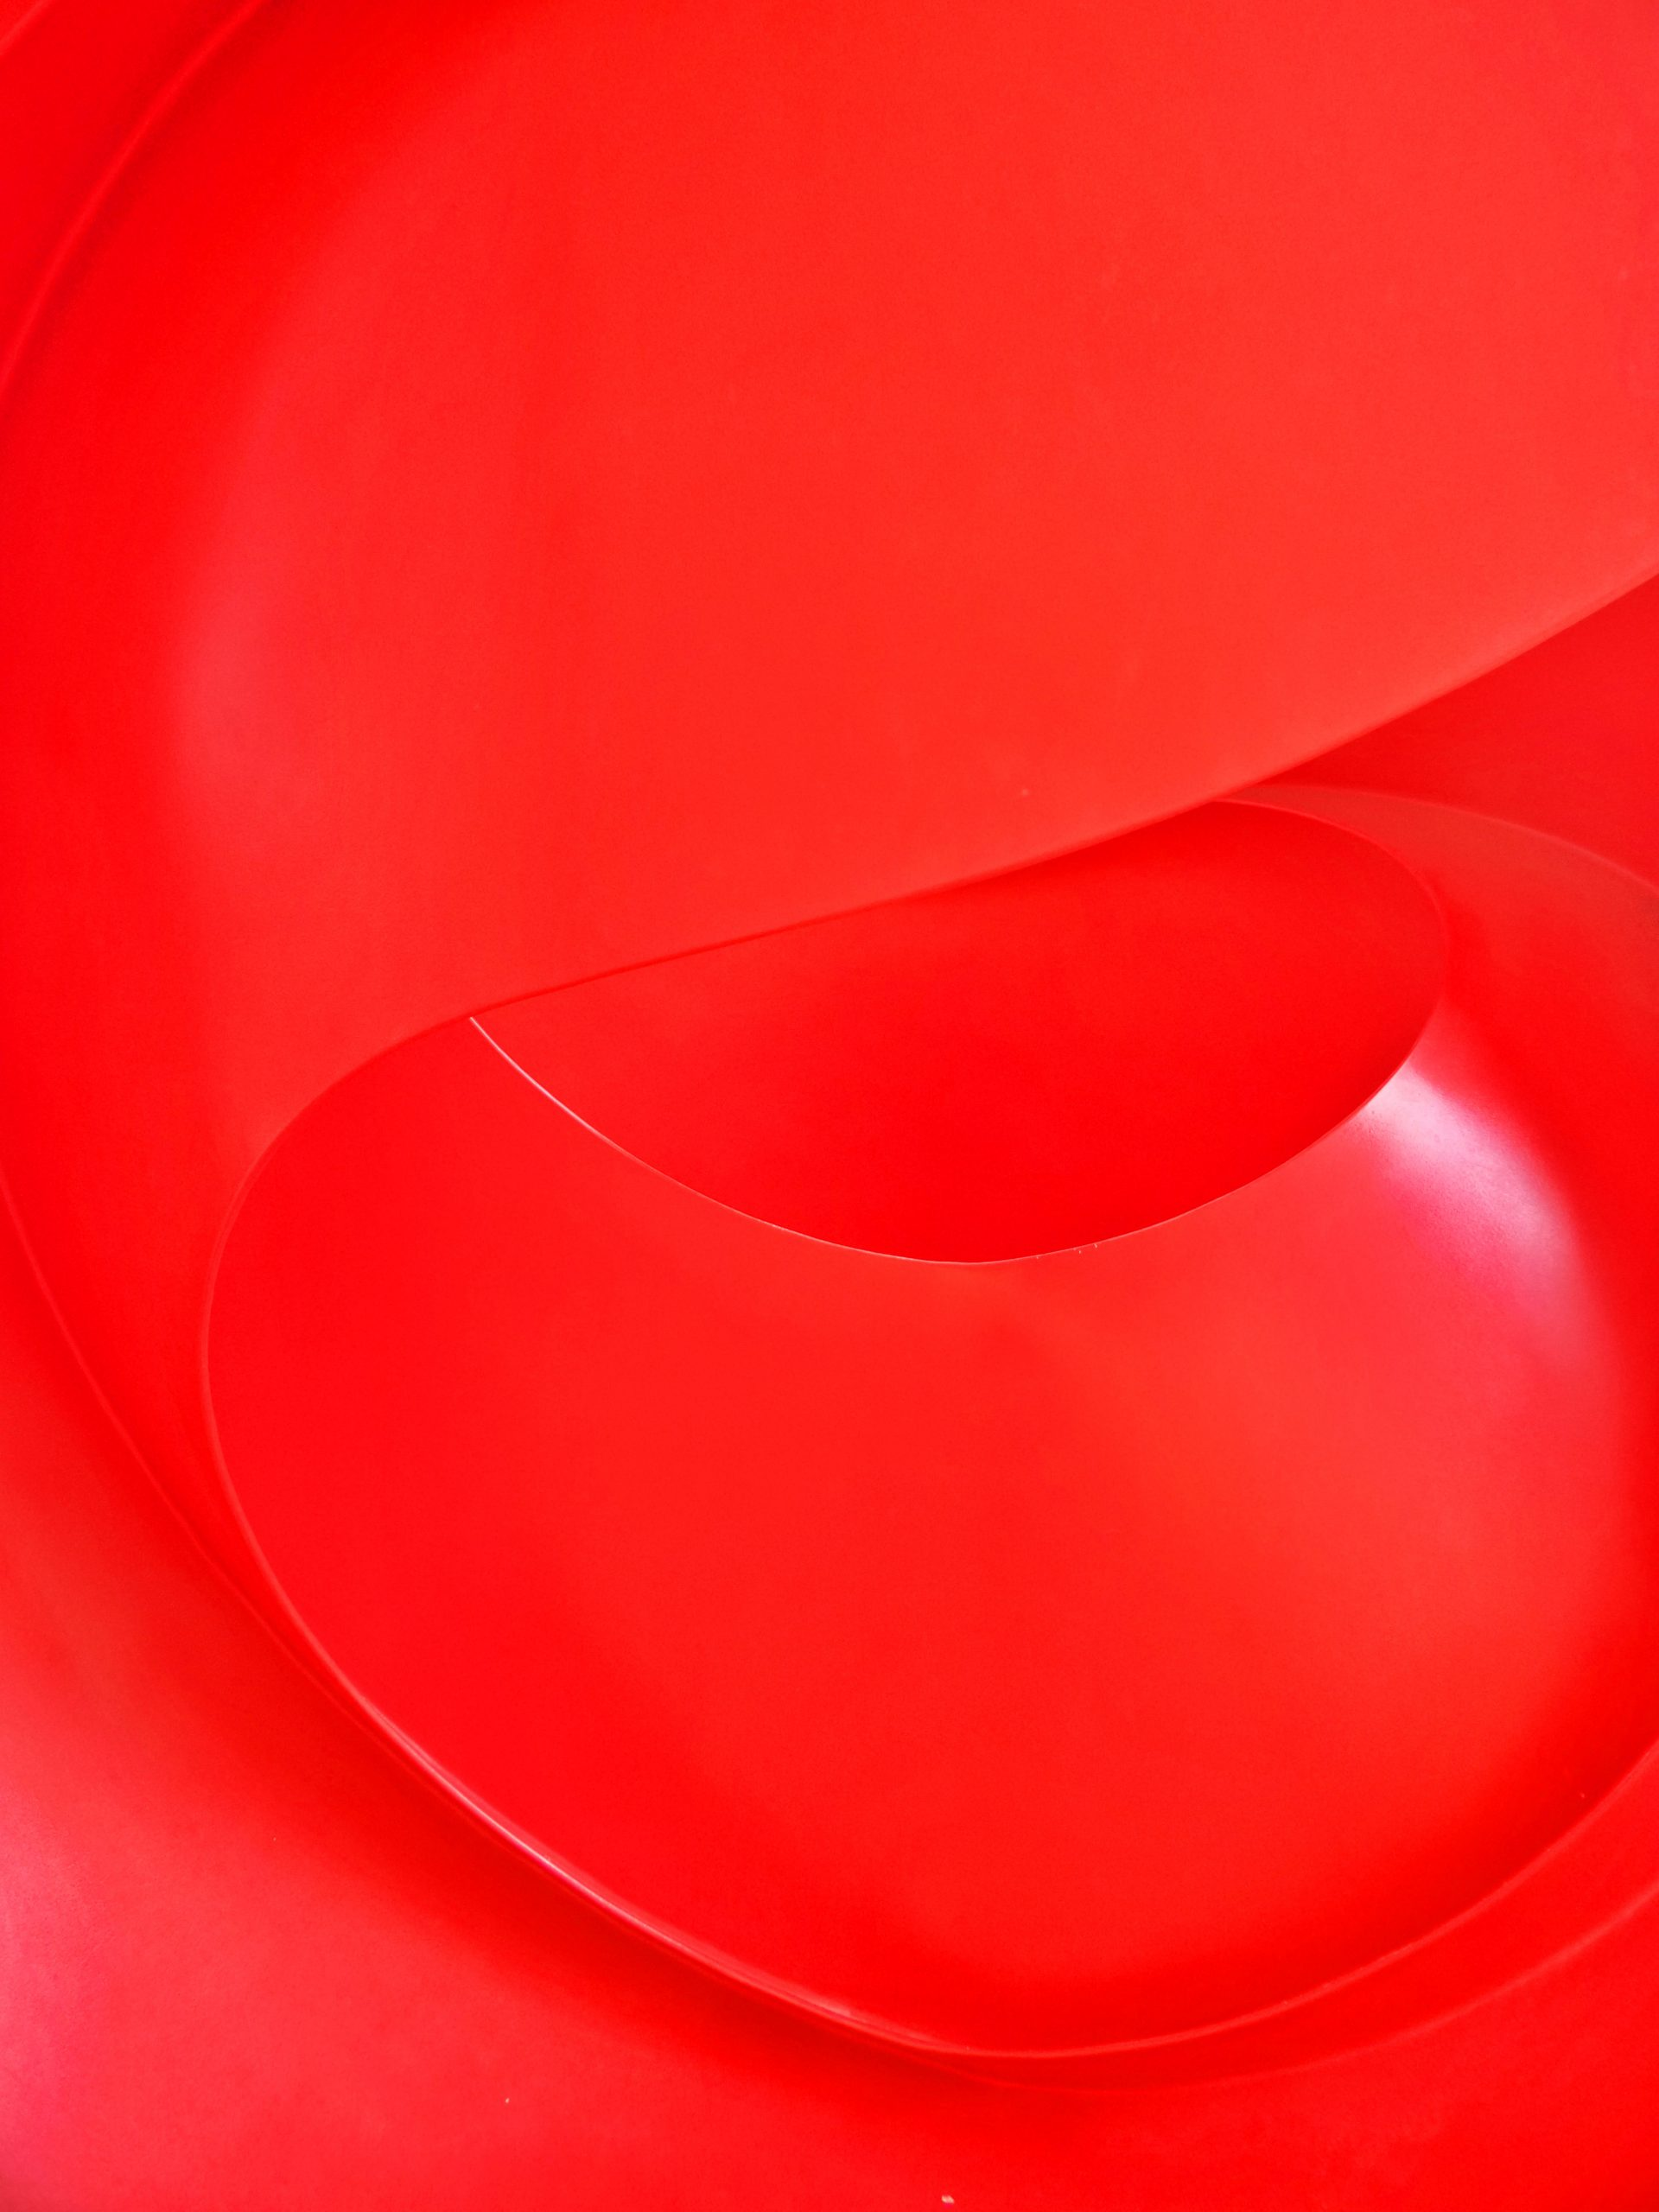 free hd New Red Wallpaper photo 1